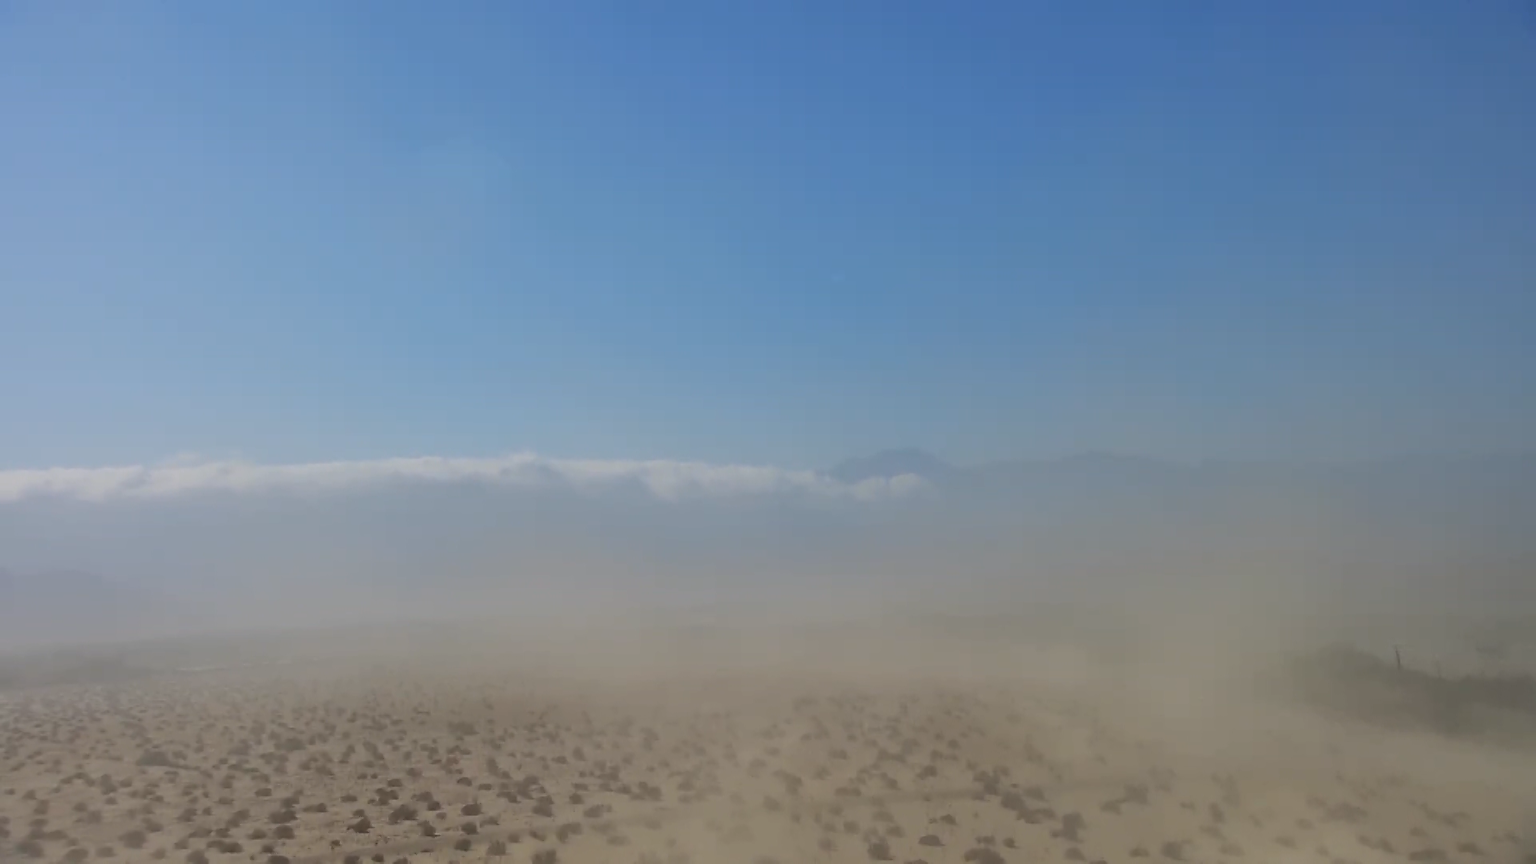 Forecast of Strong Winds in Eastern Riverside County Prompts Dust Advisory